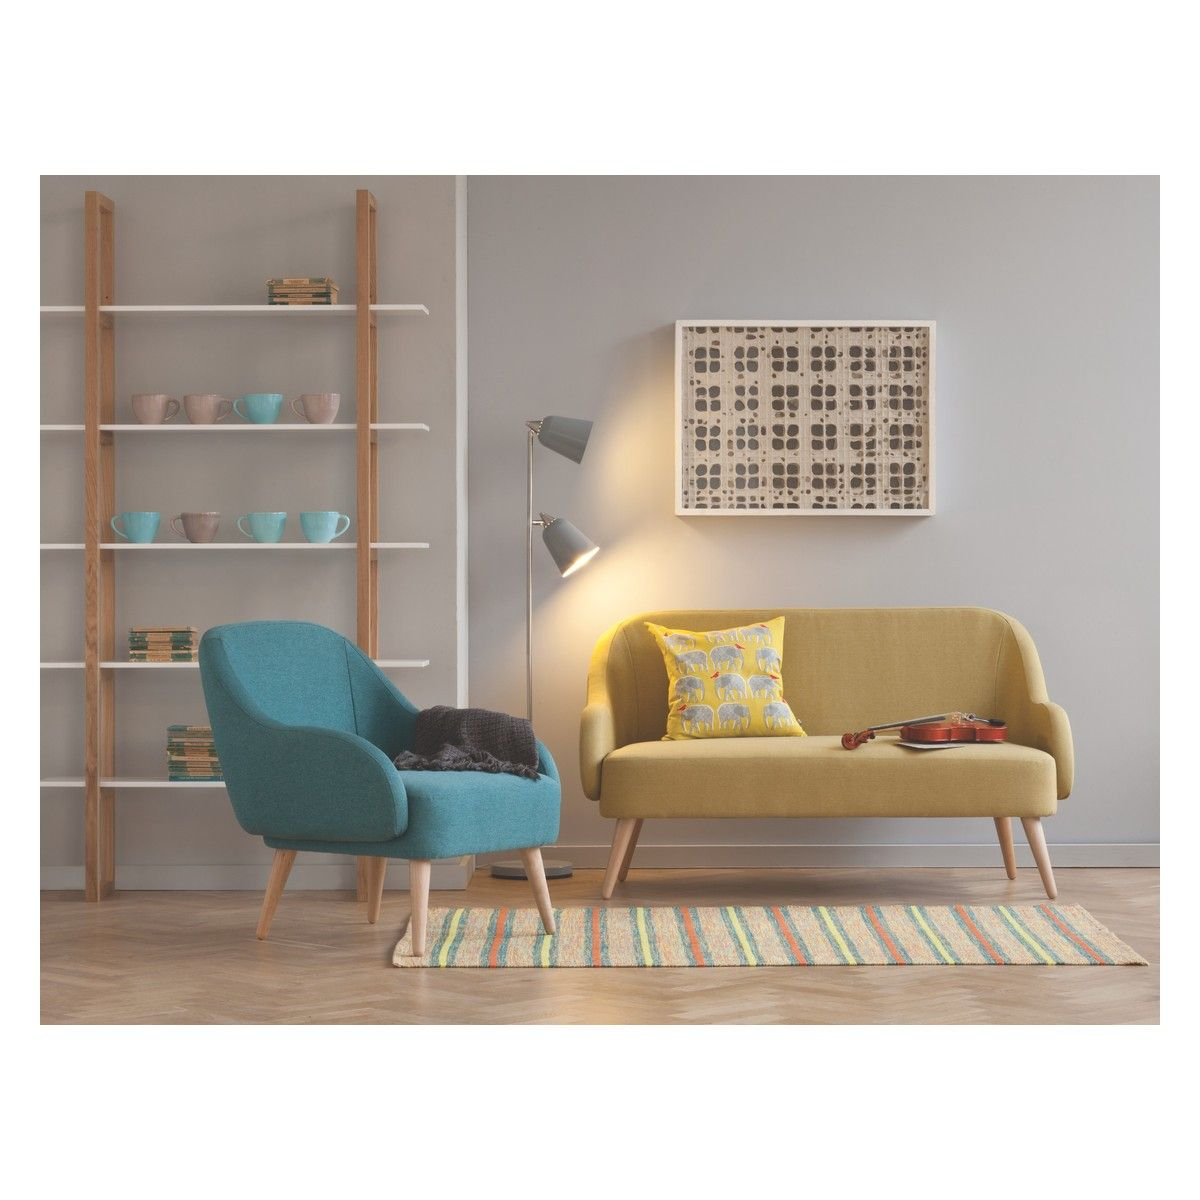 MOMO Saffron Yellow Fabric 2 Seater Sofa